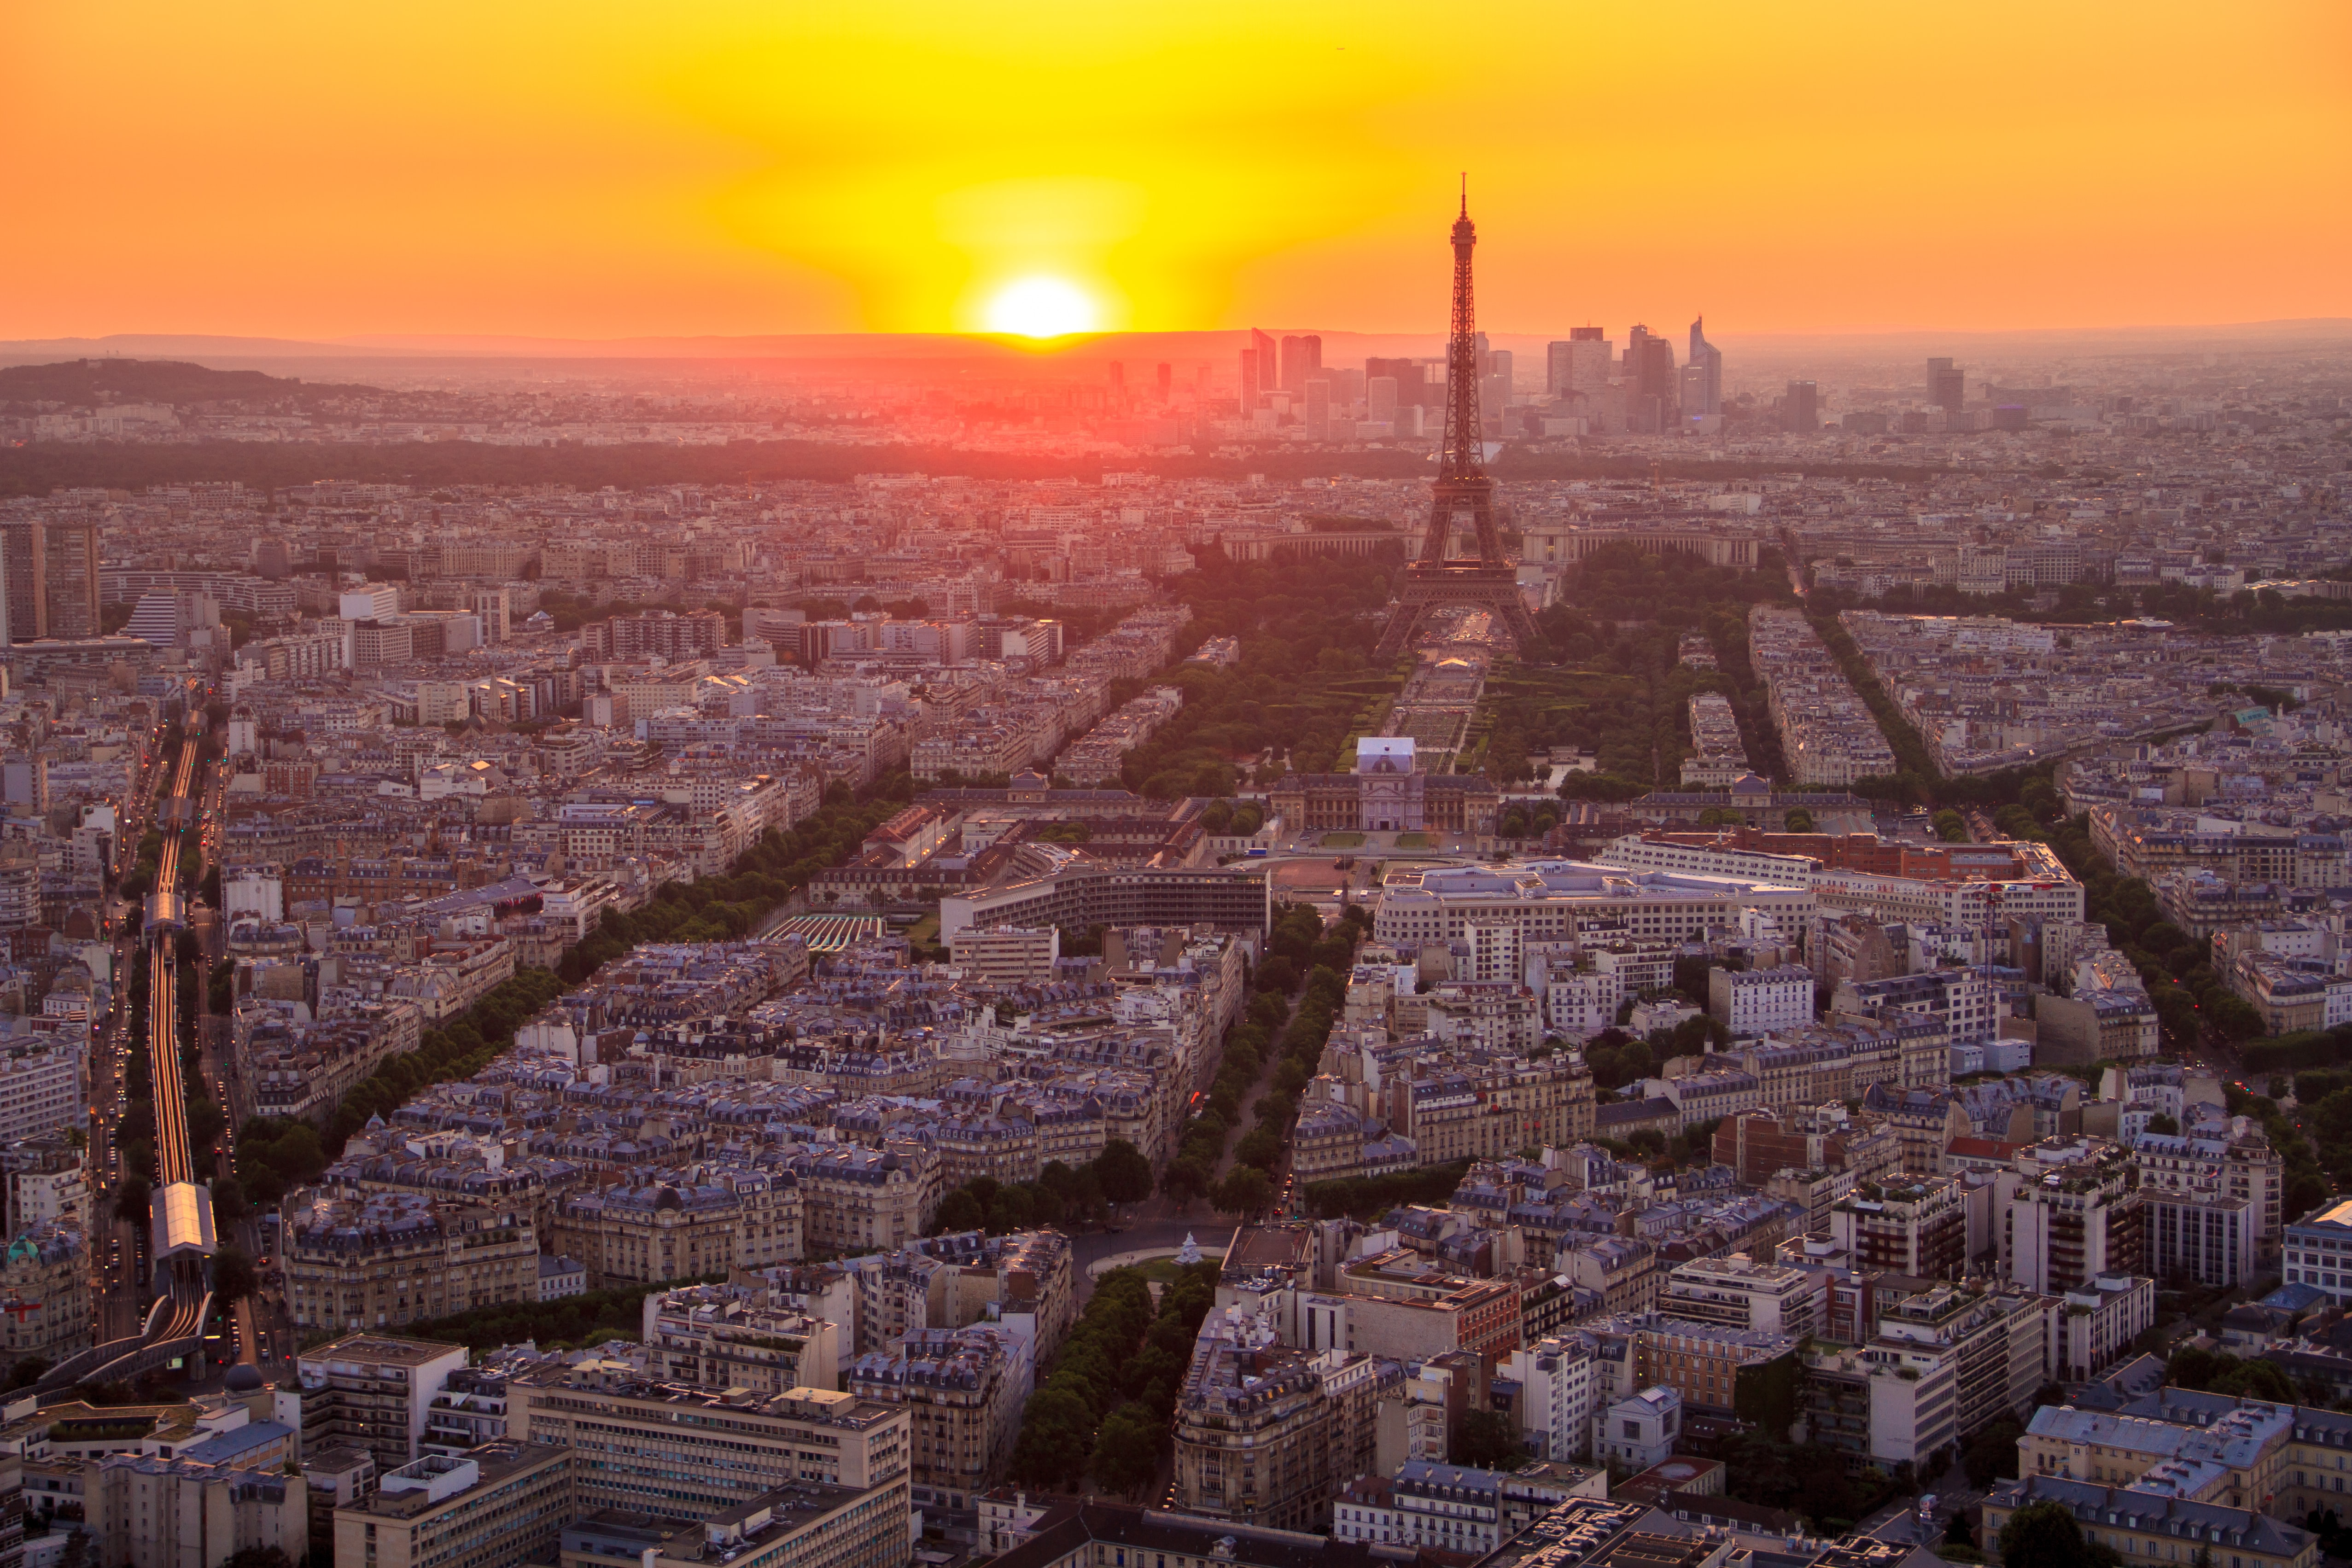 A high view of the Champ de Mars in Paris with the Eiffel Tower during sunset